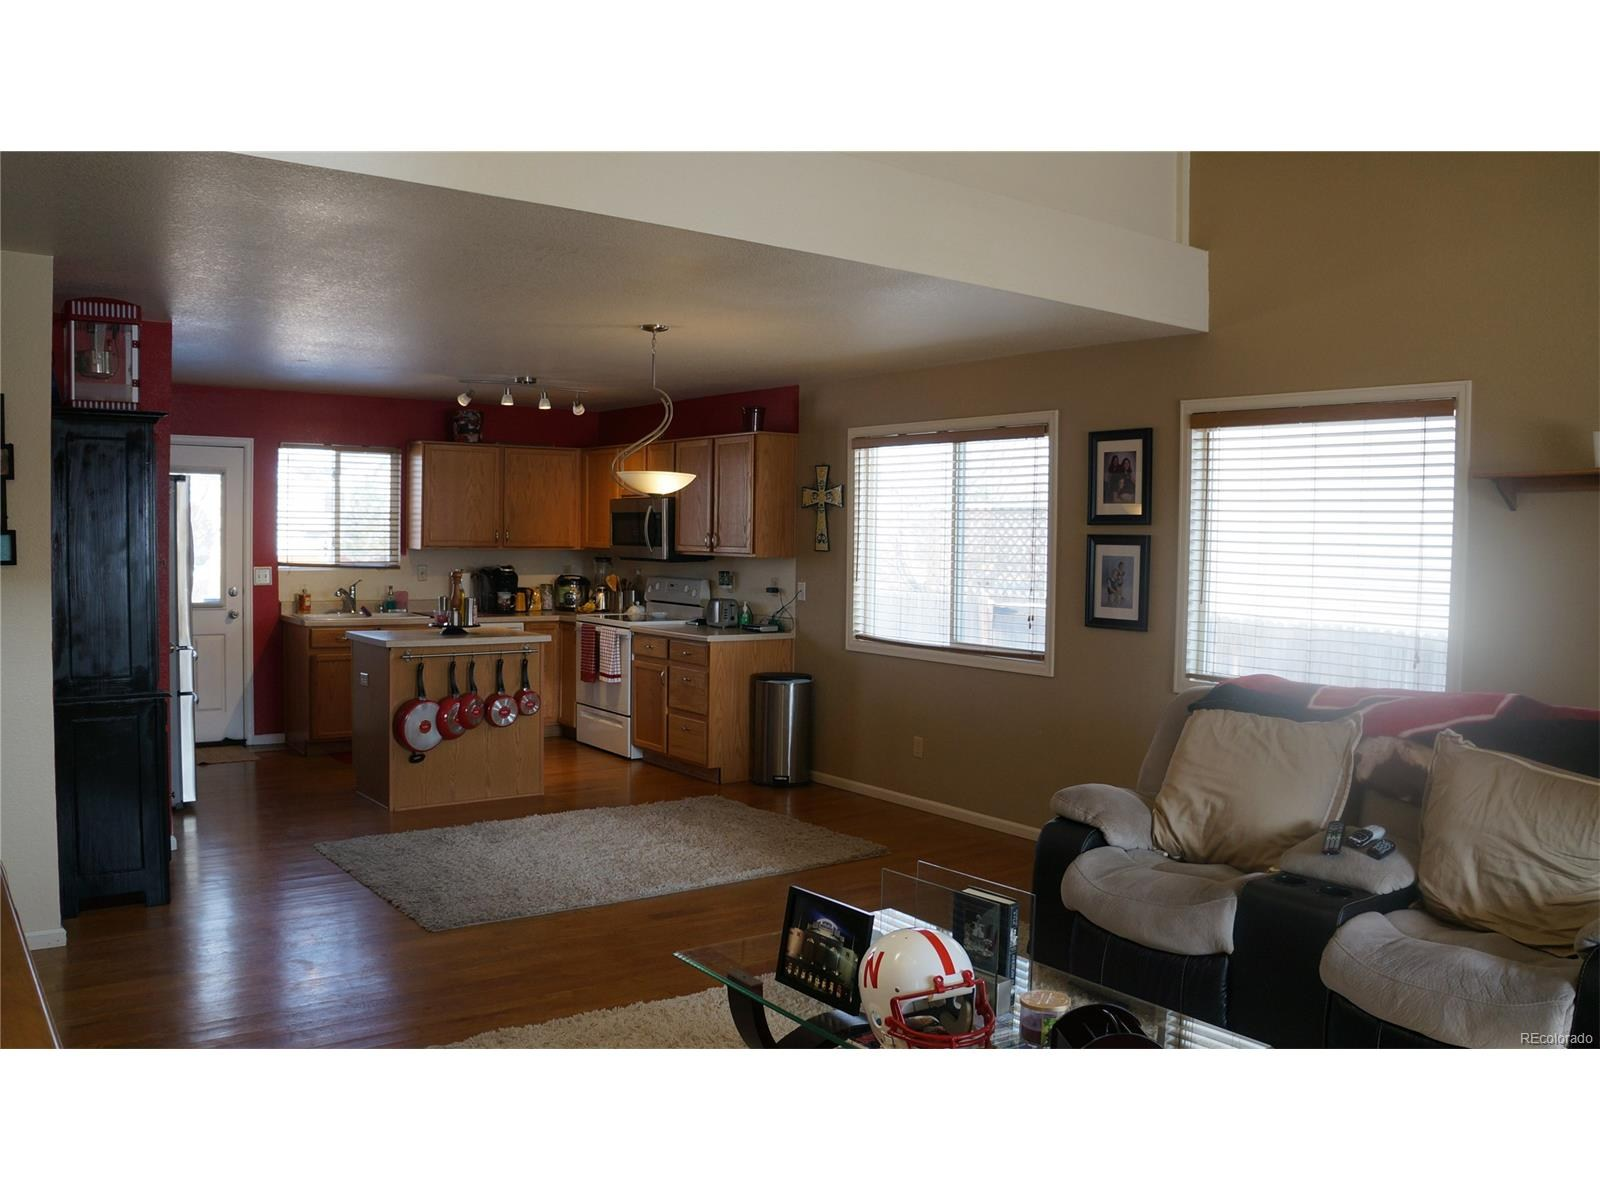 MLS# 8850556 - 7 - 2245 E 127th Place, Thornton, CO 80241